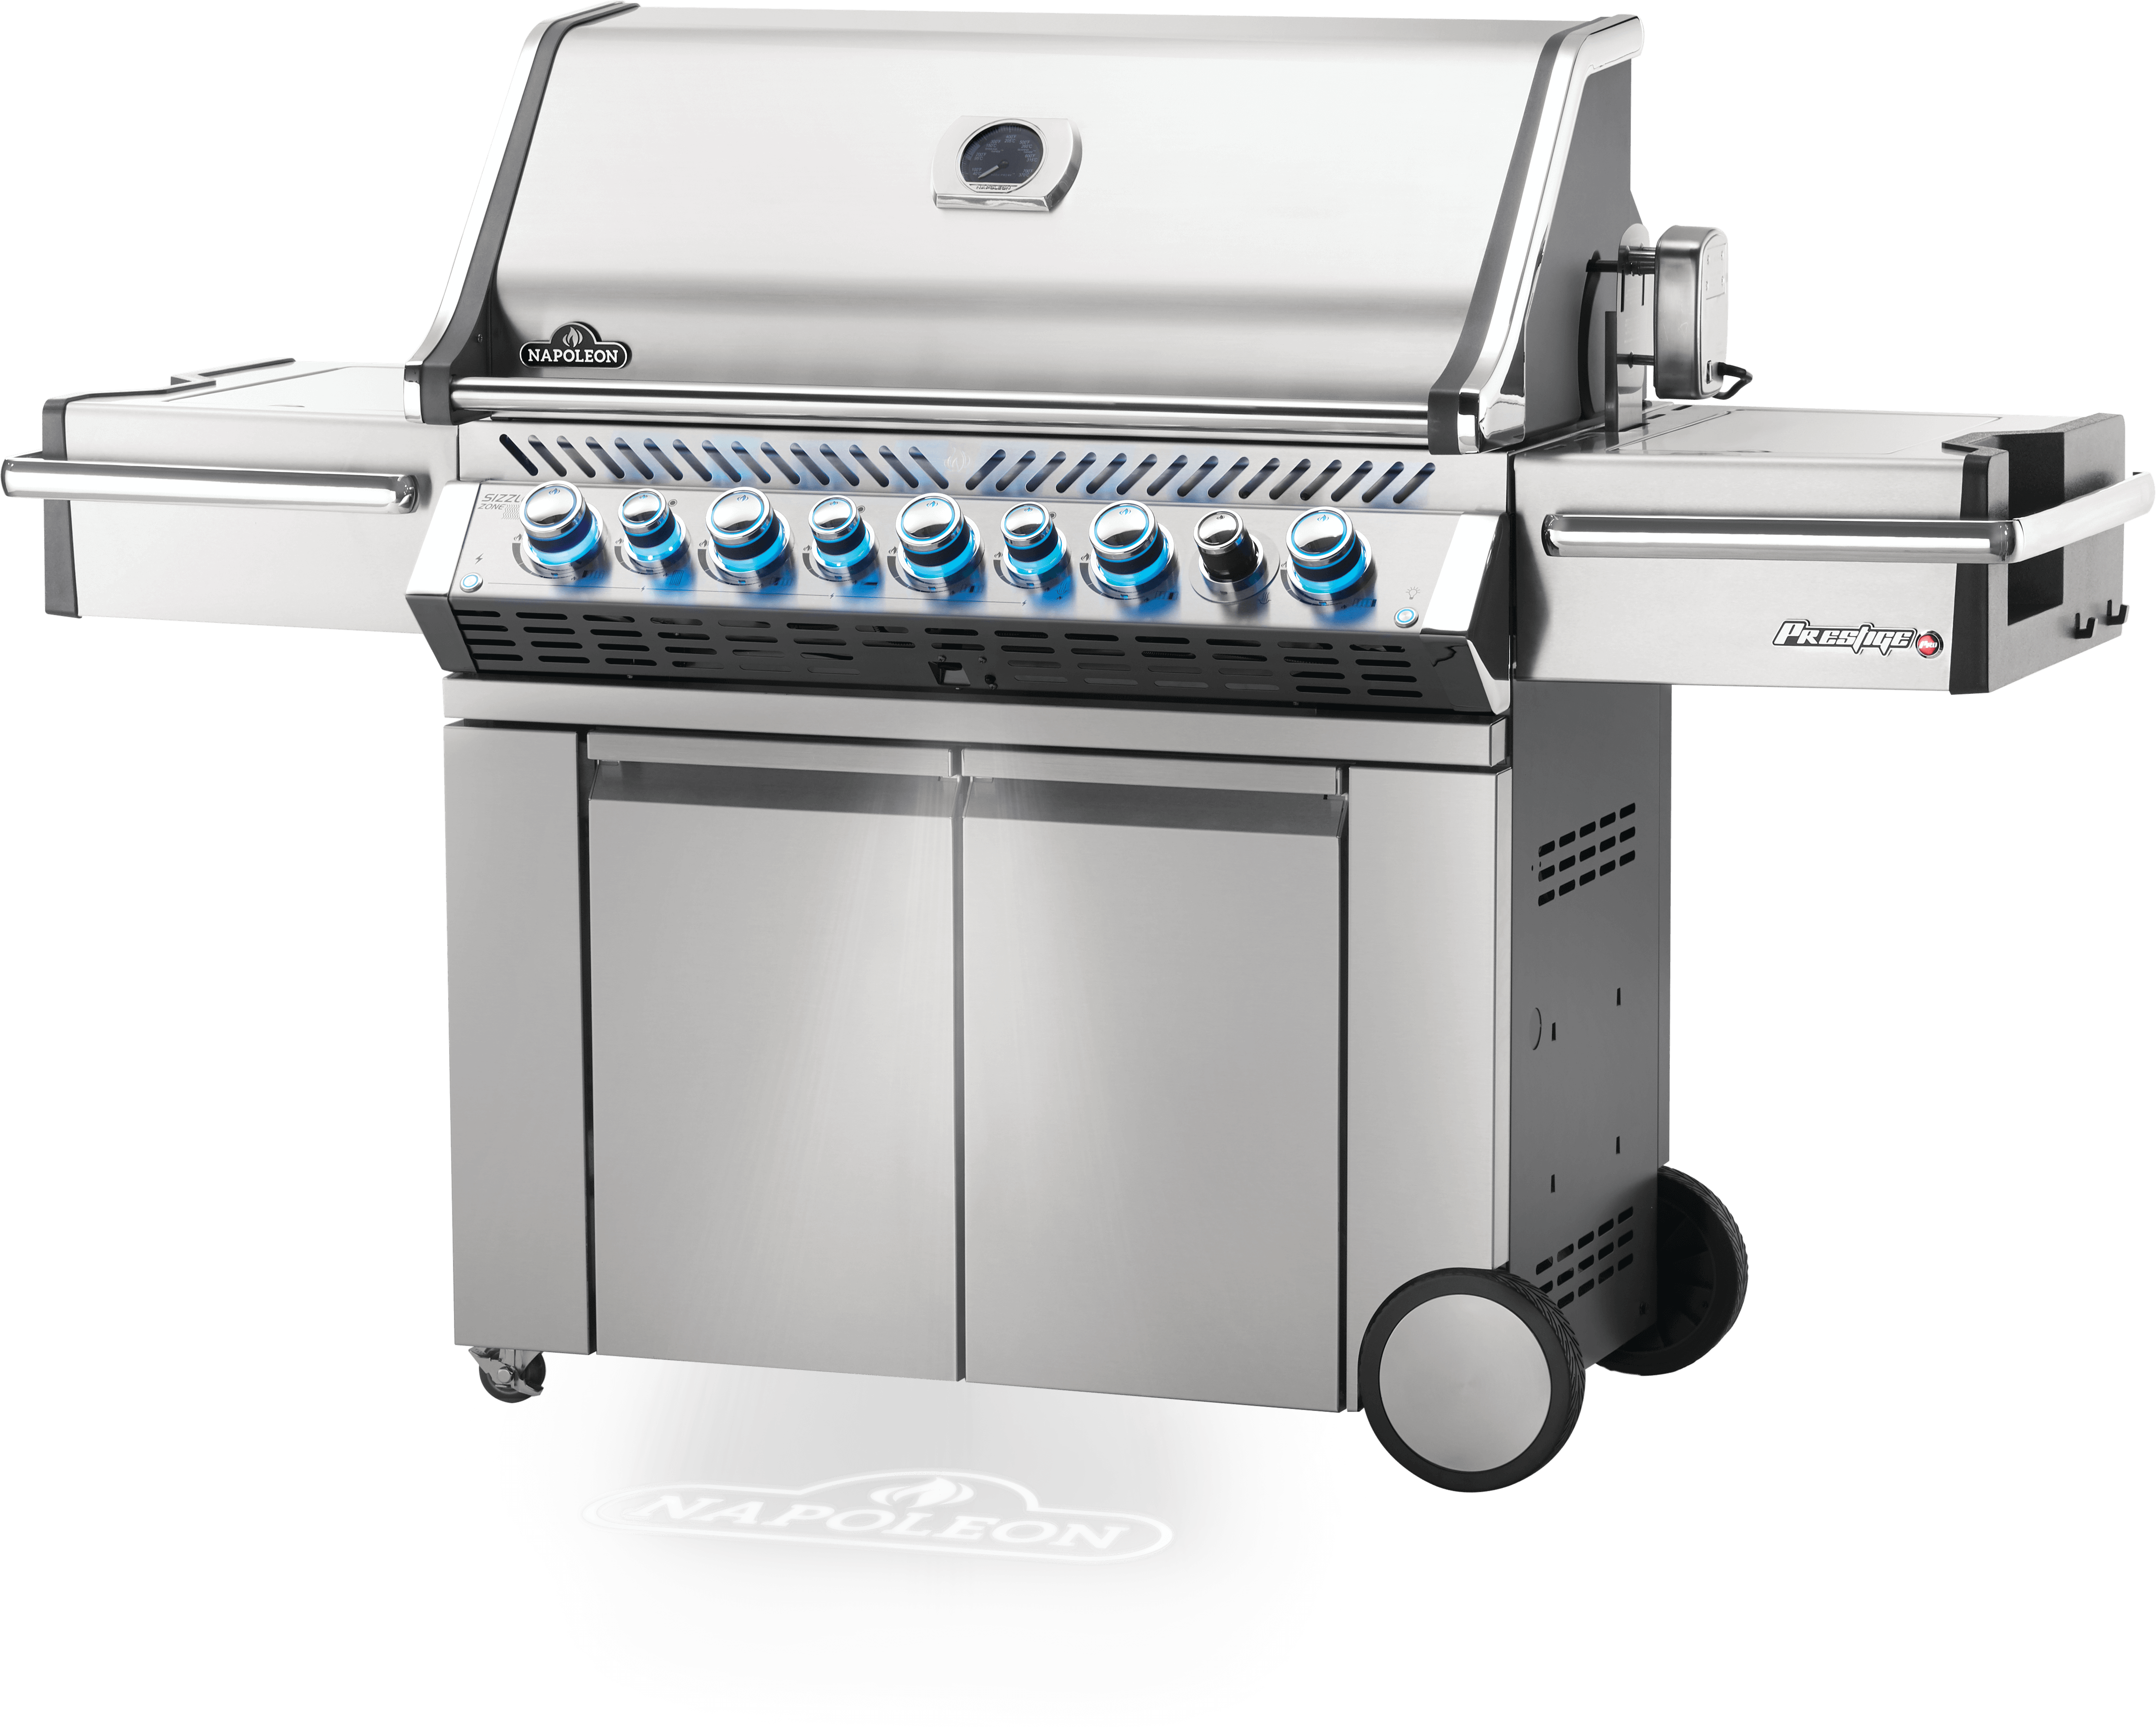 stainless steel barbecue by Napoleon available at Rene's Total Home Comfort Ltd. Campbellford, ON